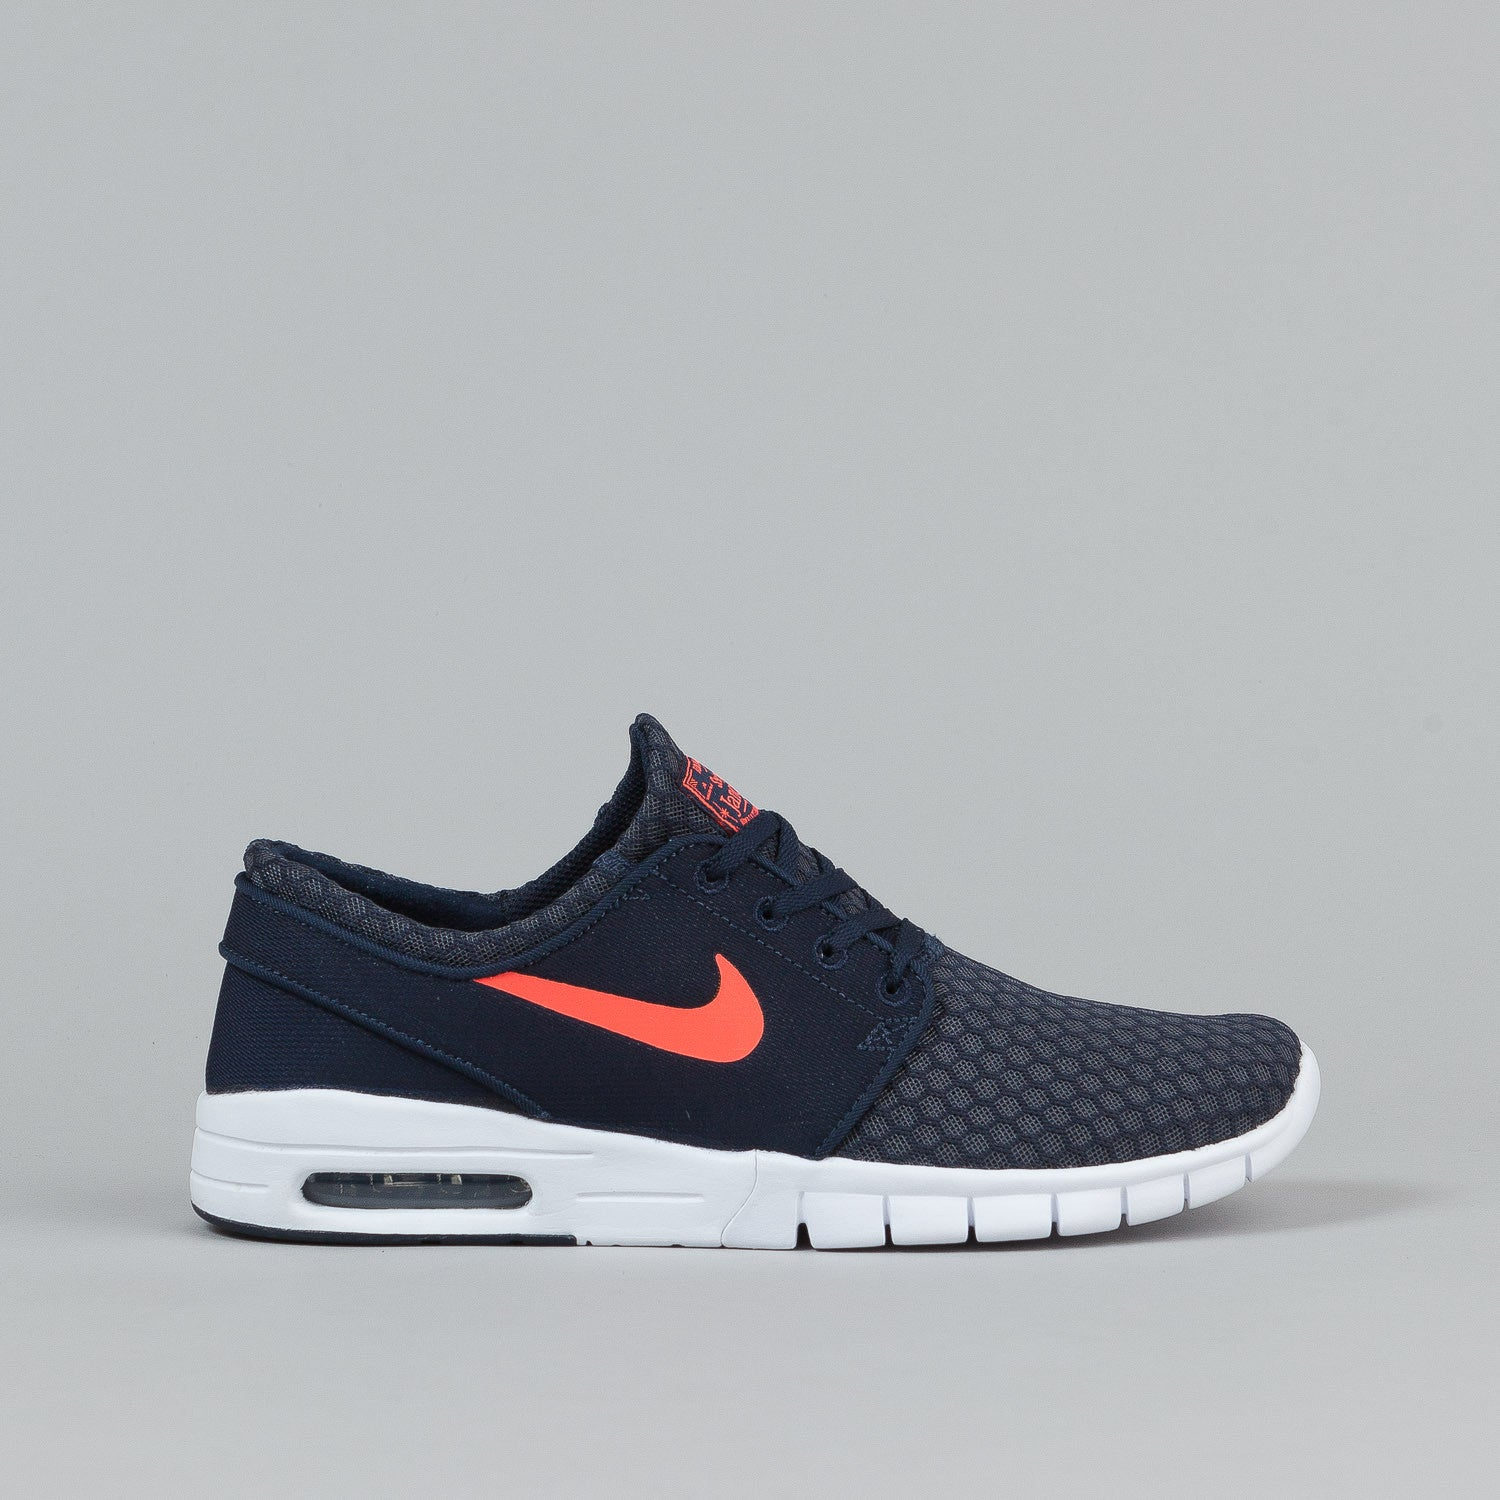 nike sb stefan janoski max shoes obsidian hot lava white flatspot. Black Bedroom Furniture Sets. Home Design Ideas